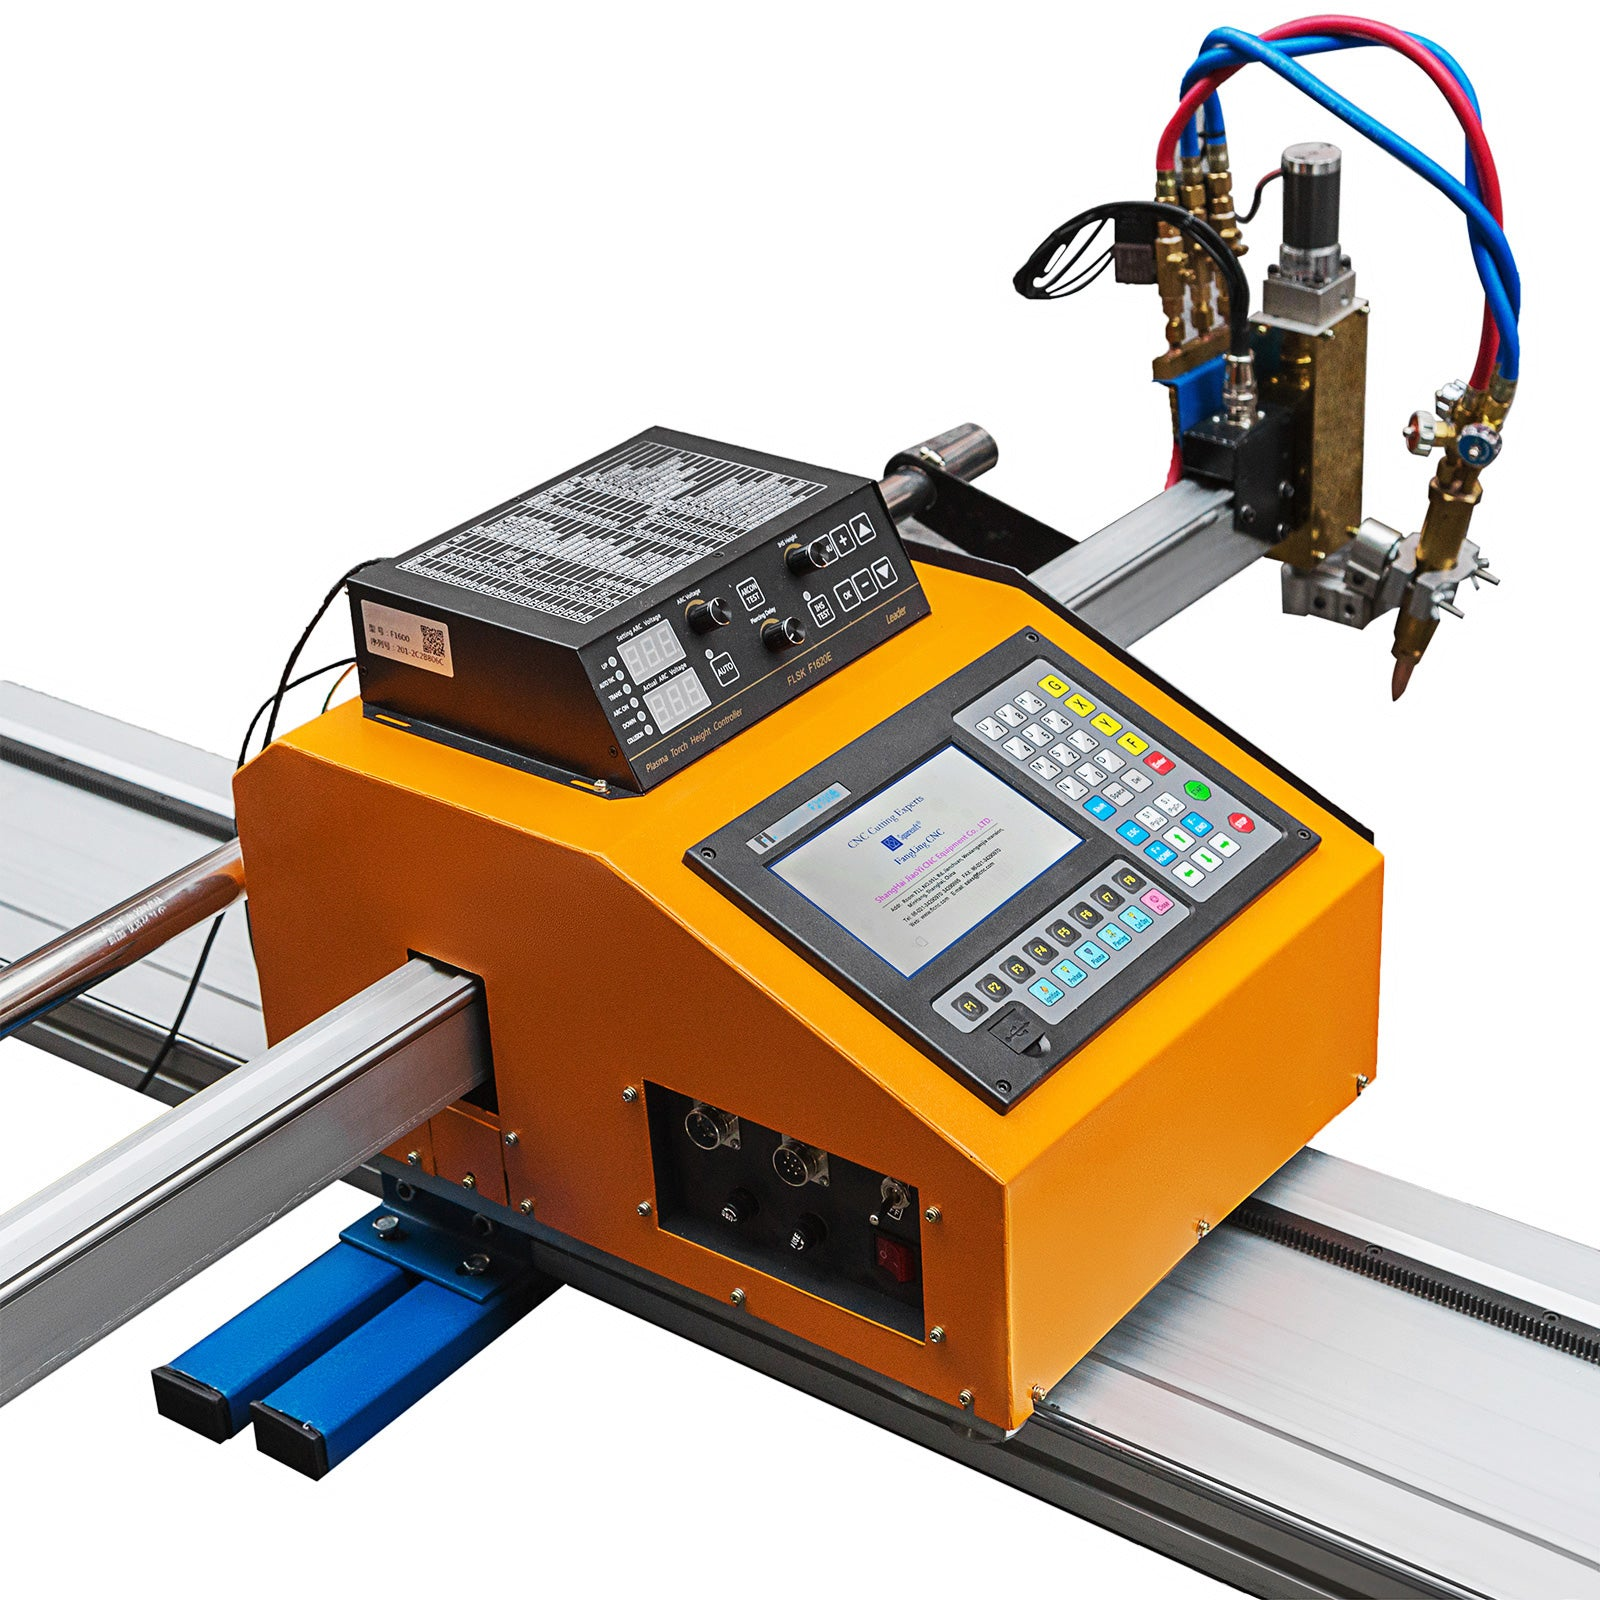 Portable Cnc Machine W/ Thc For Gas/plasma Cutting Effective Accurate Acetylene